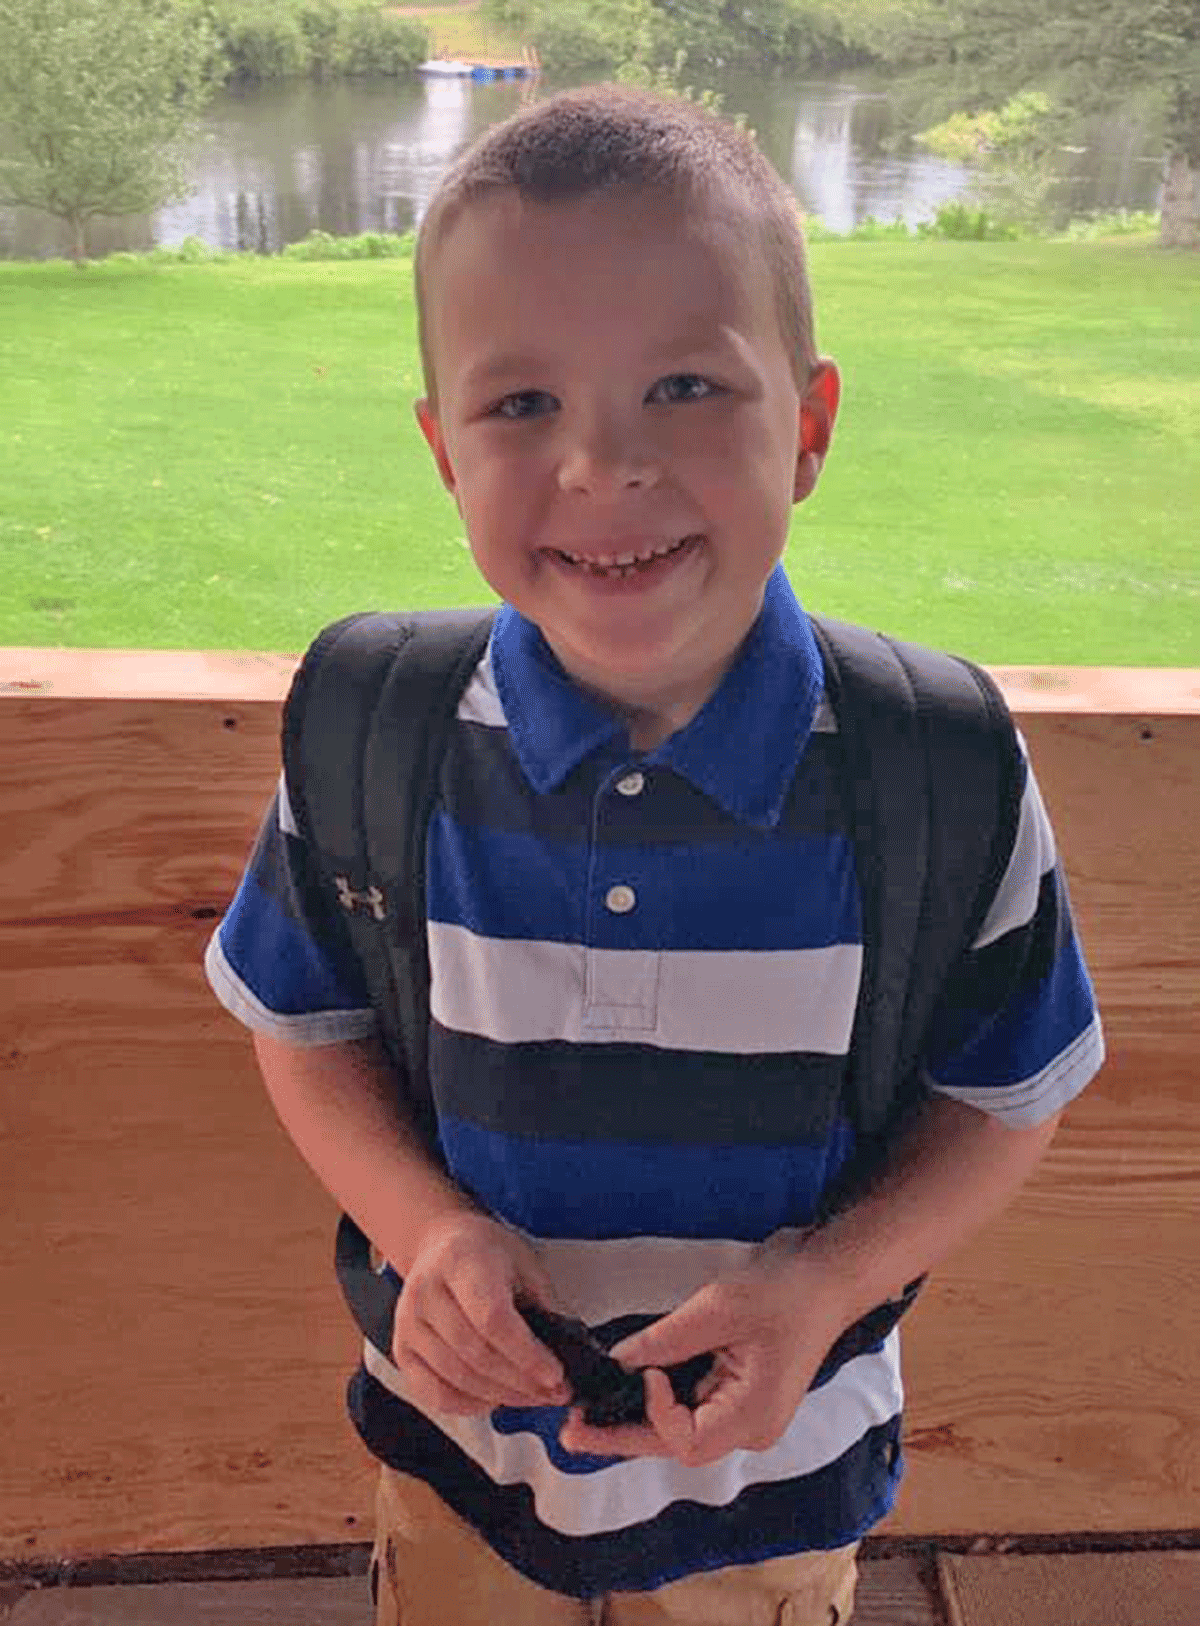 Above is Wyatt Todd excited for his first day of third grade at Banford Elementary in Canton. Photo submitted by Nichole Todd.